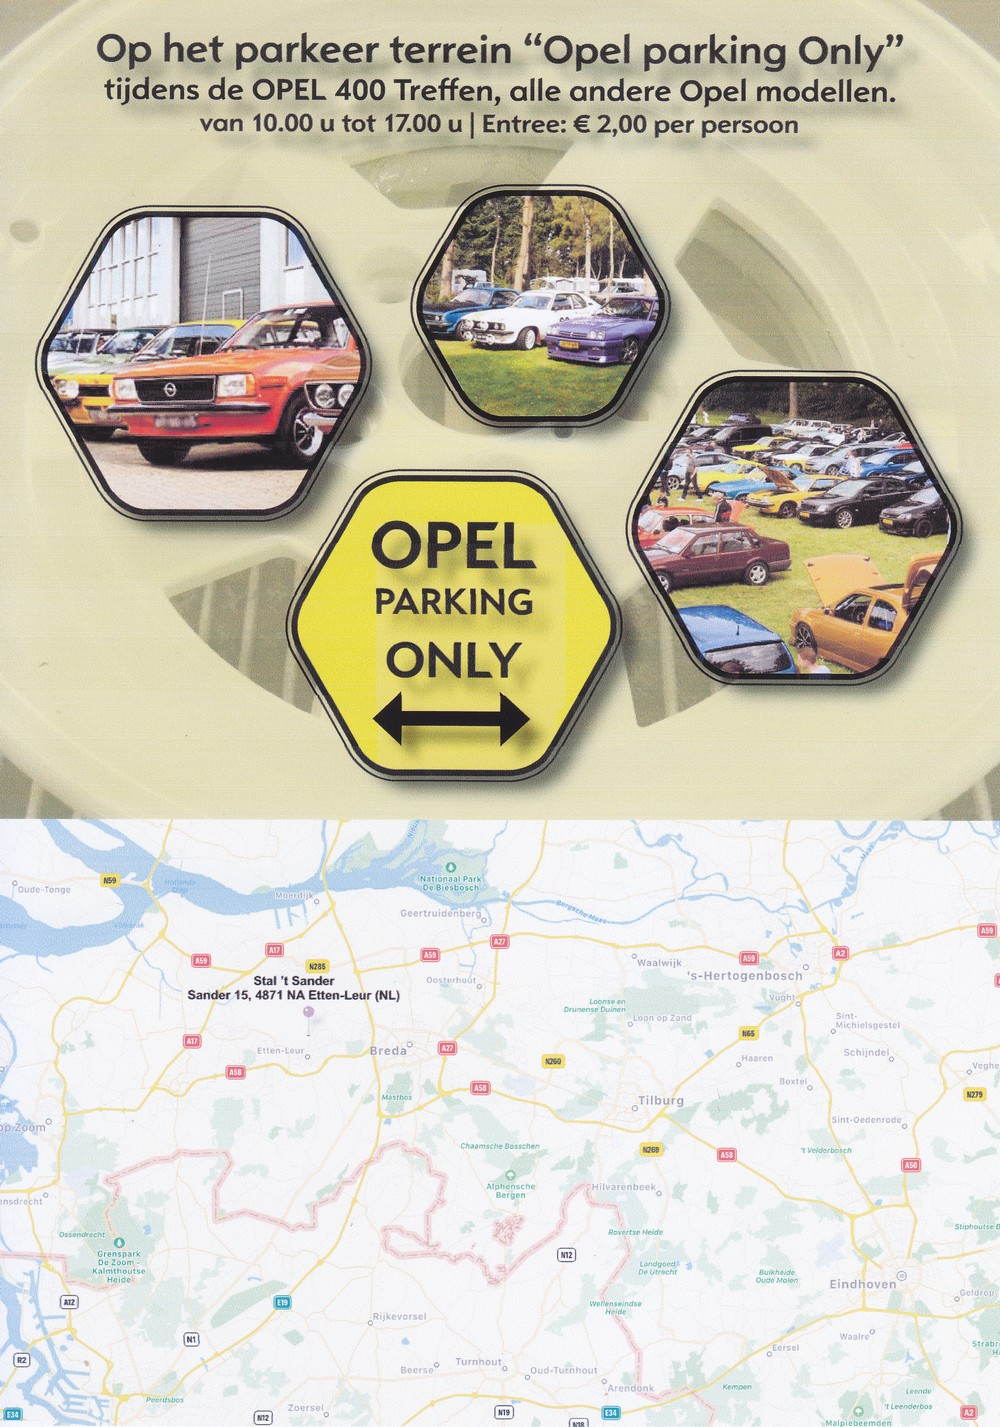 opel parking only